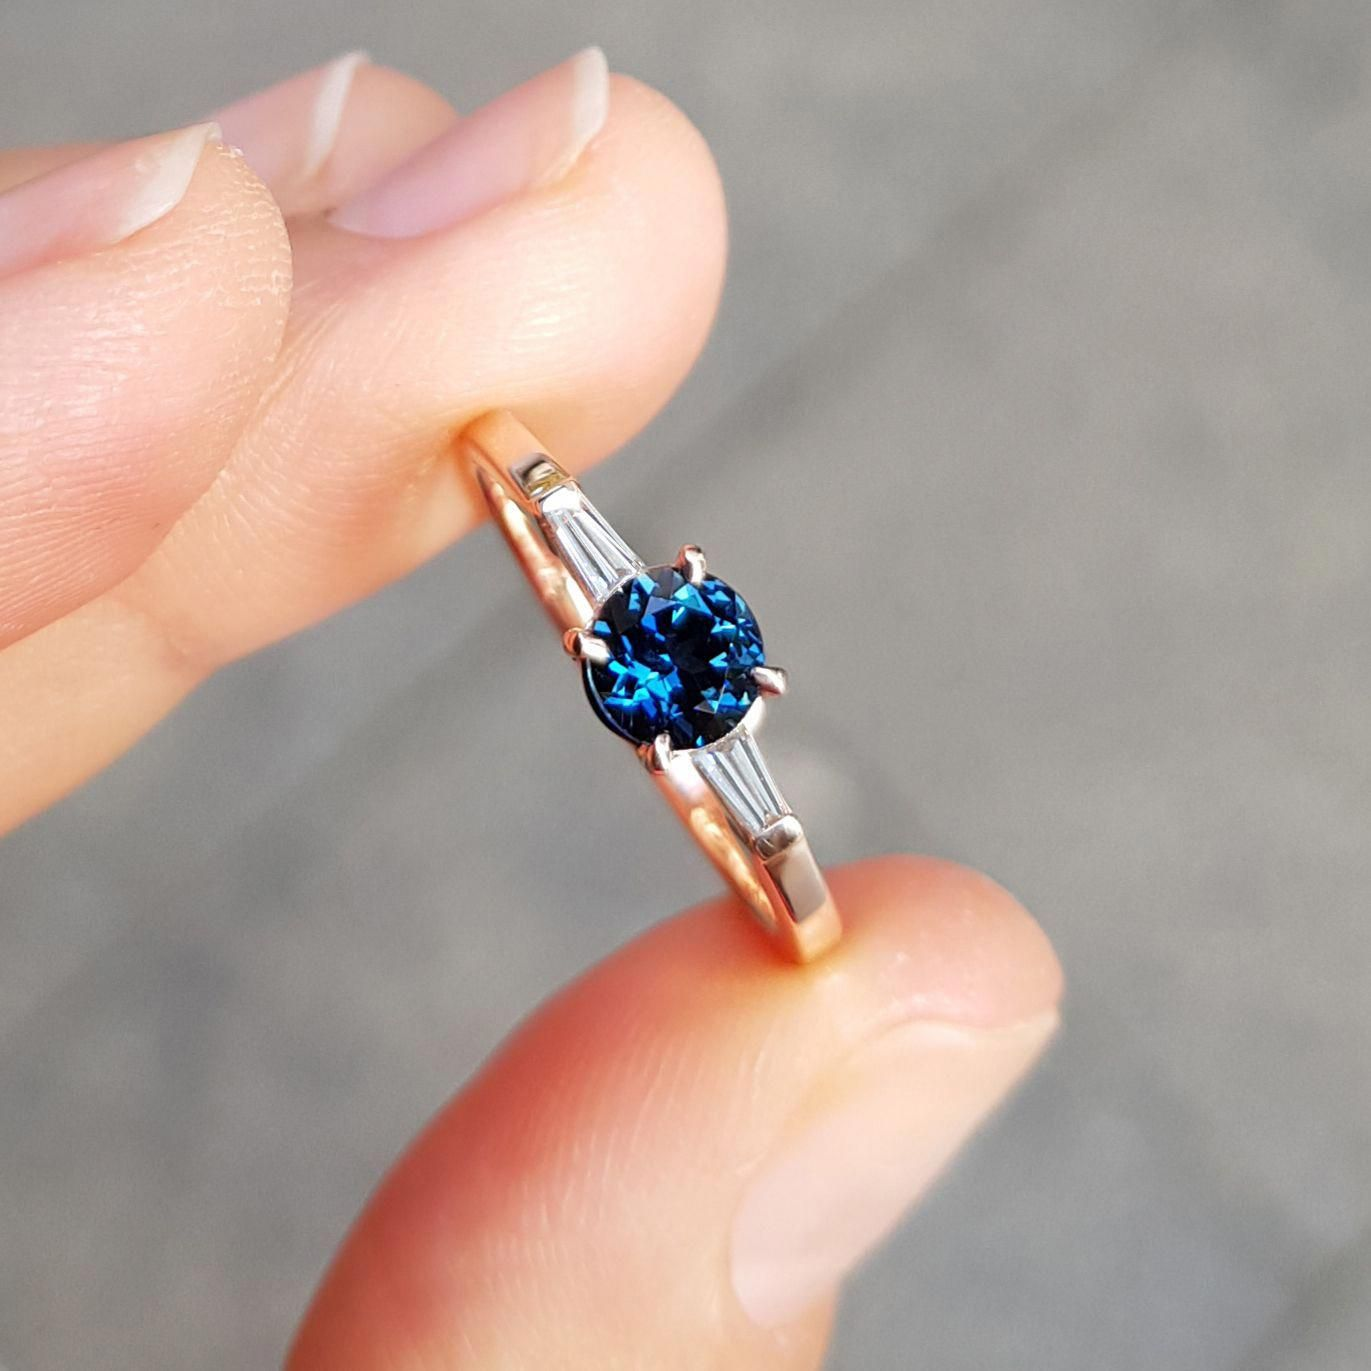 Teal sapphire and diamond engagement ring in rose gold by